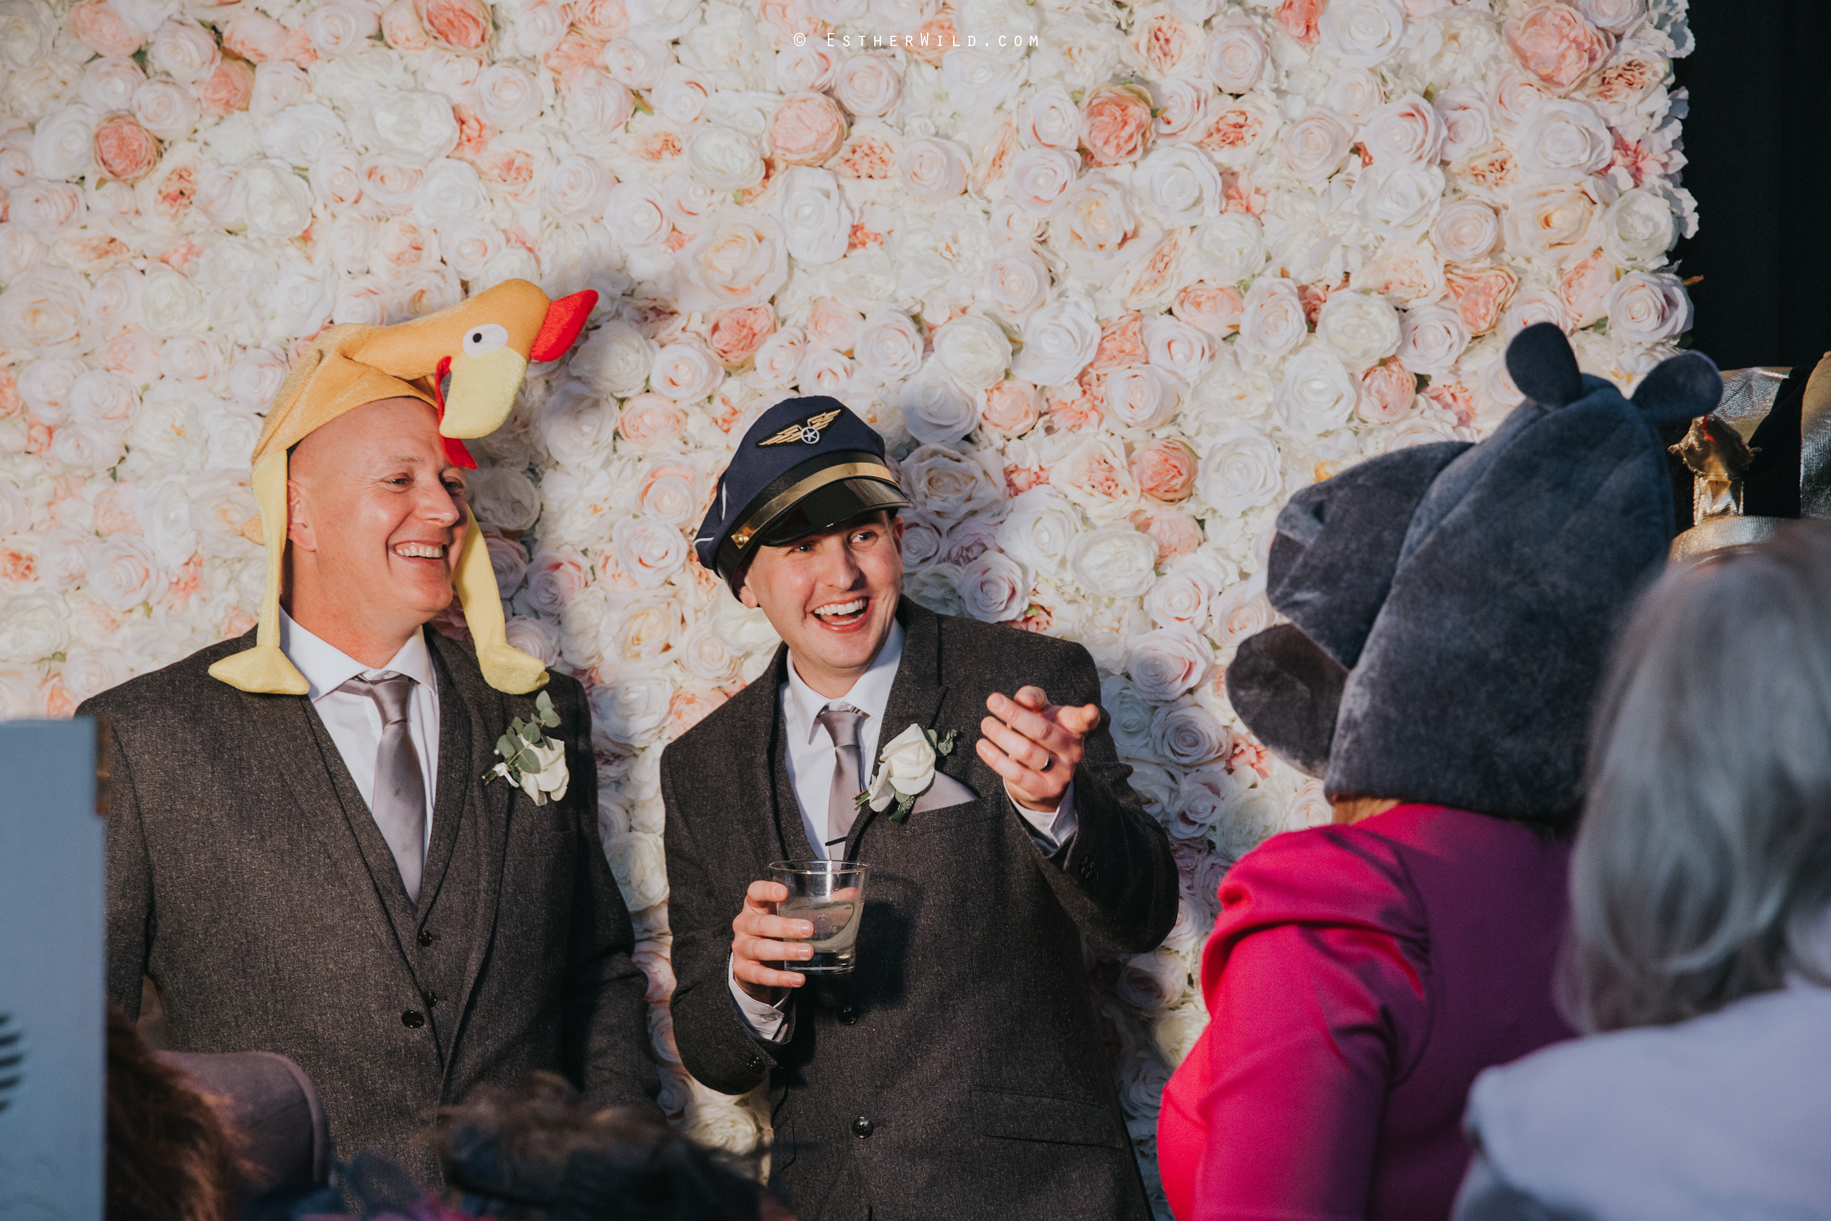 Norfolk_Mead_Hotel_Norwich_Wedding_Copyright_Esther_Wild_Photographer_IMG_3090.jpg